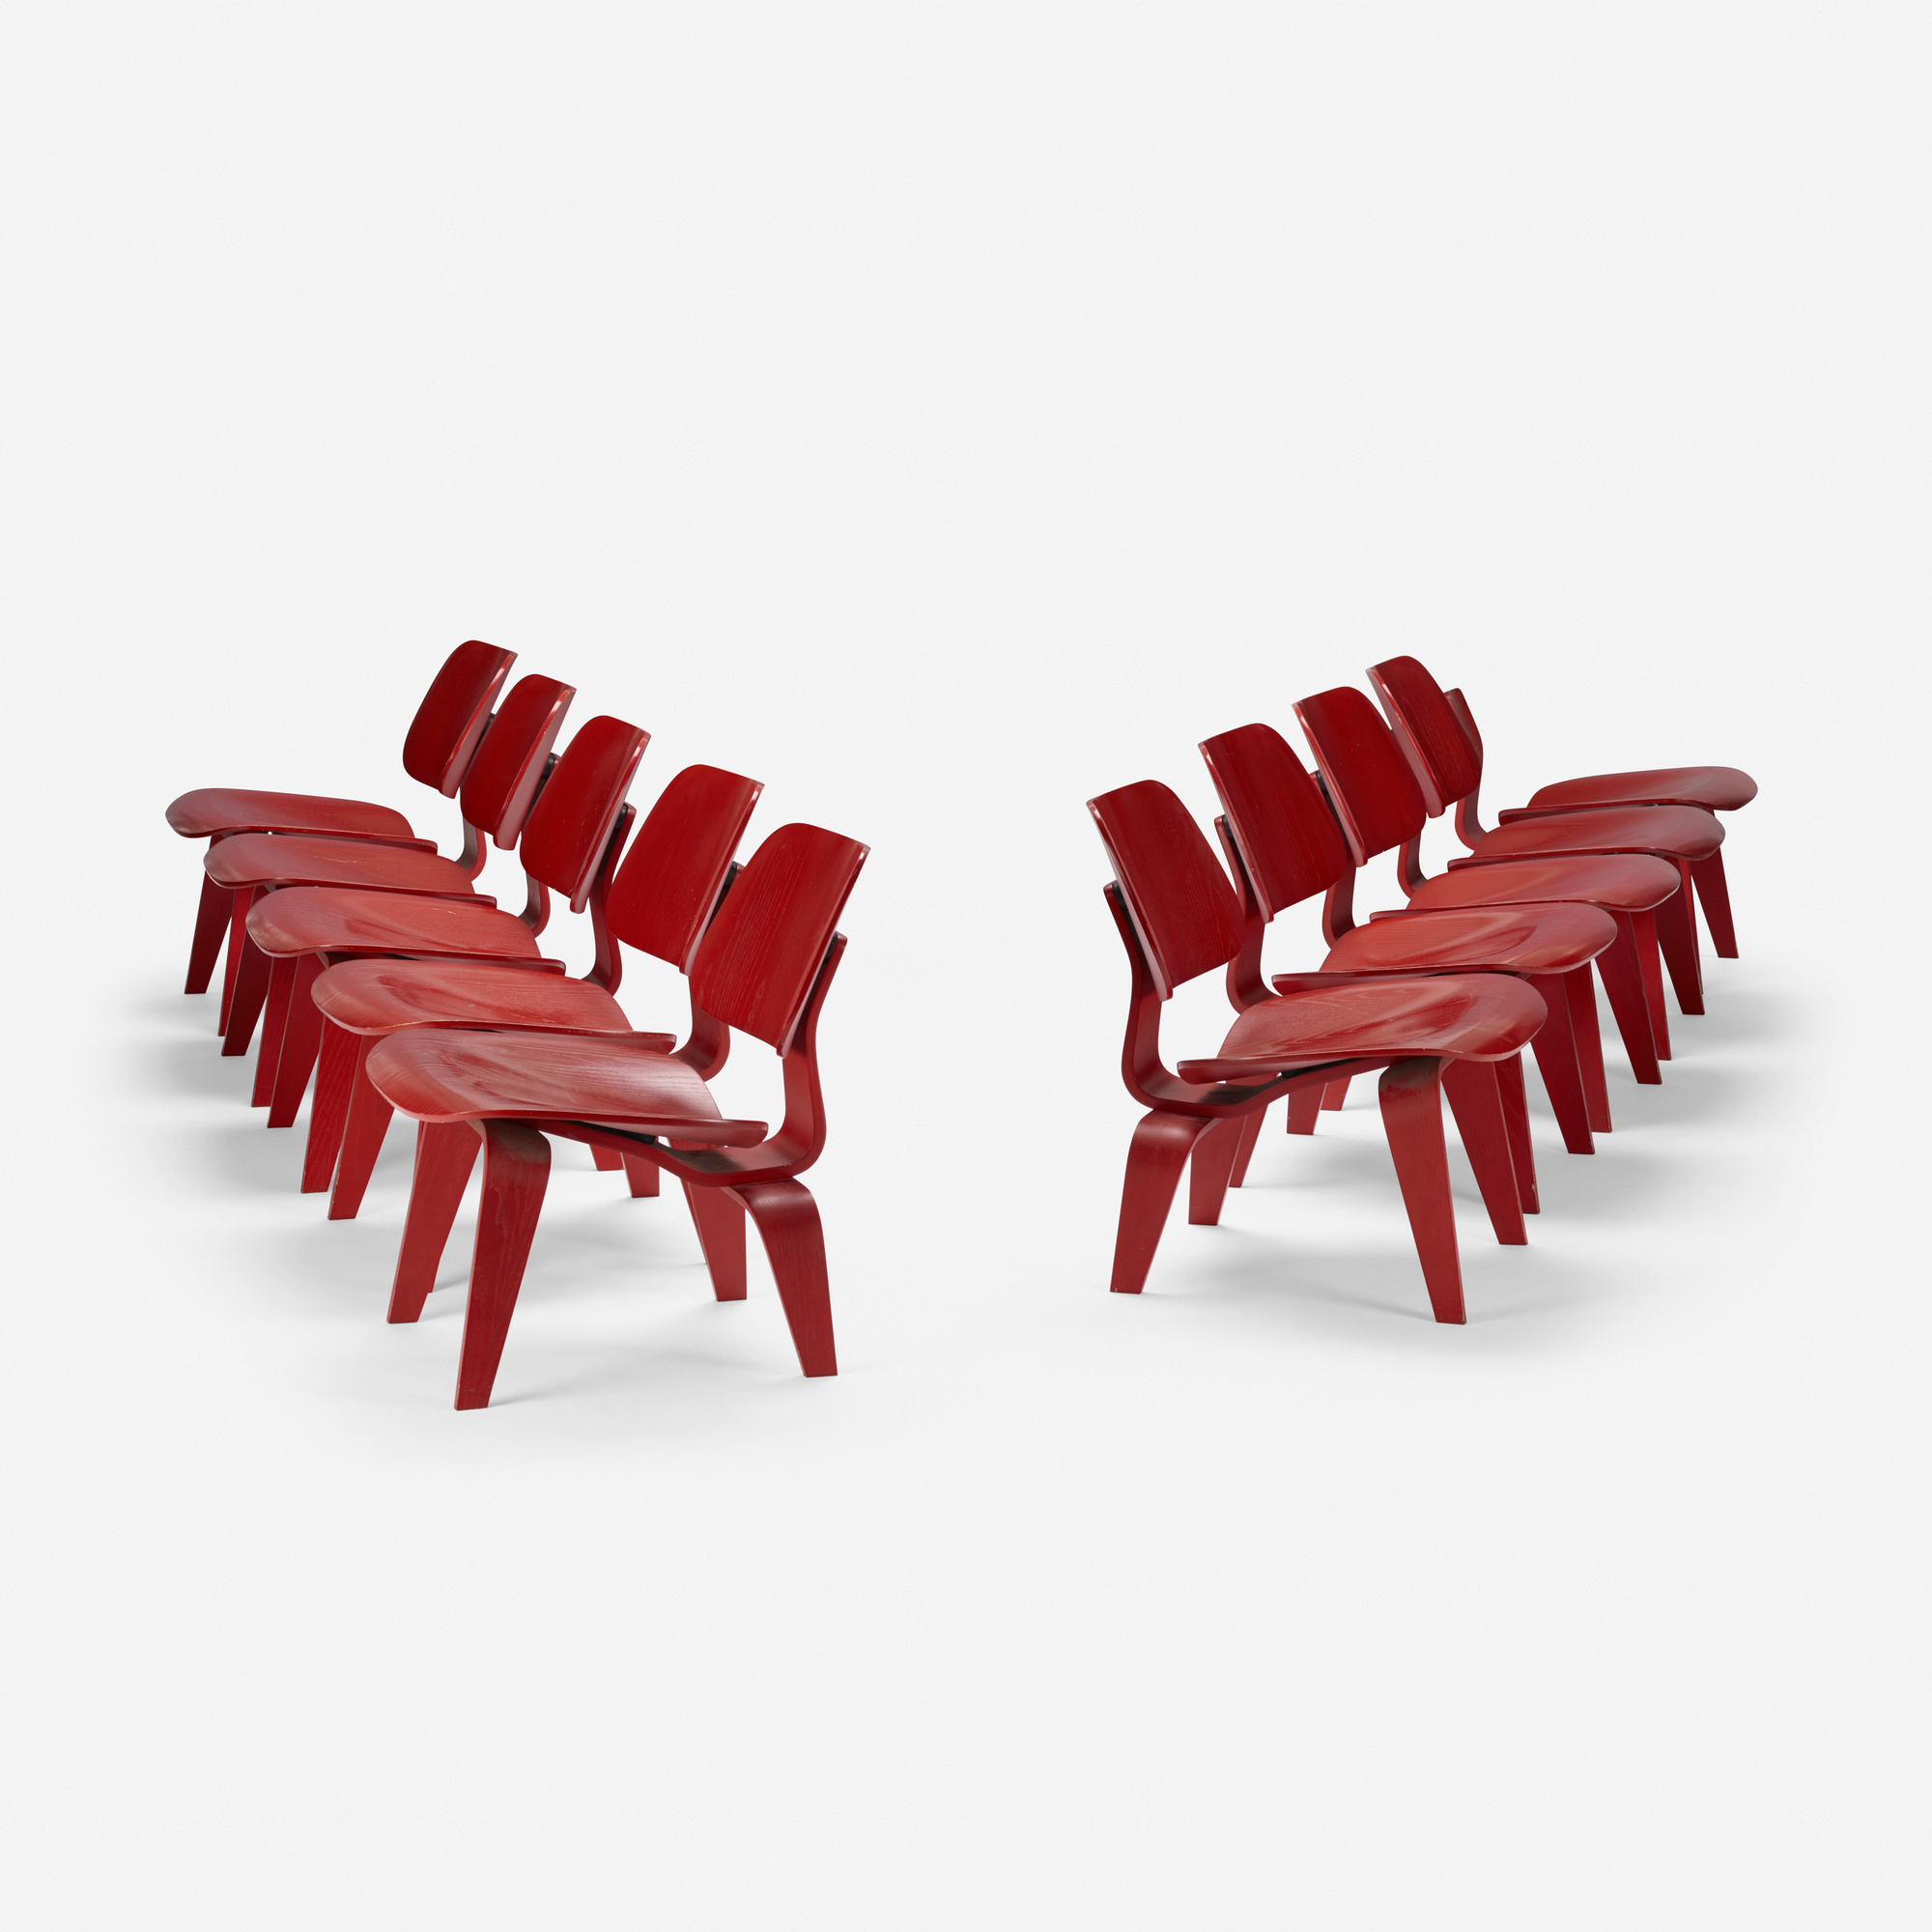 259: Charles and Ray Eames / LCWs, set of ten (1 of 3)